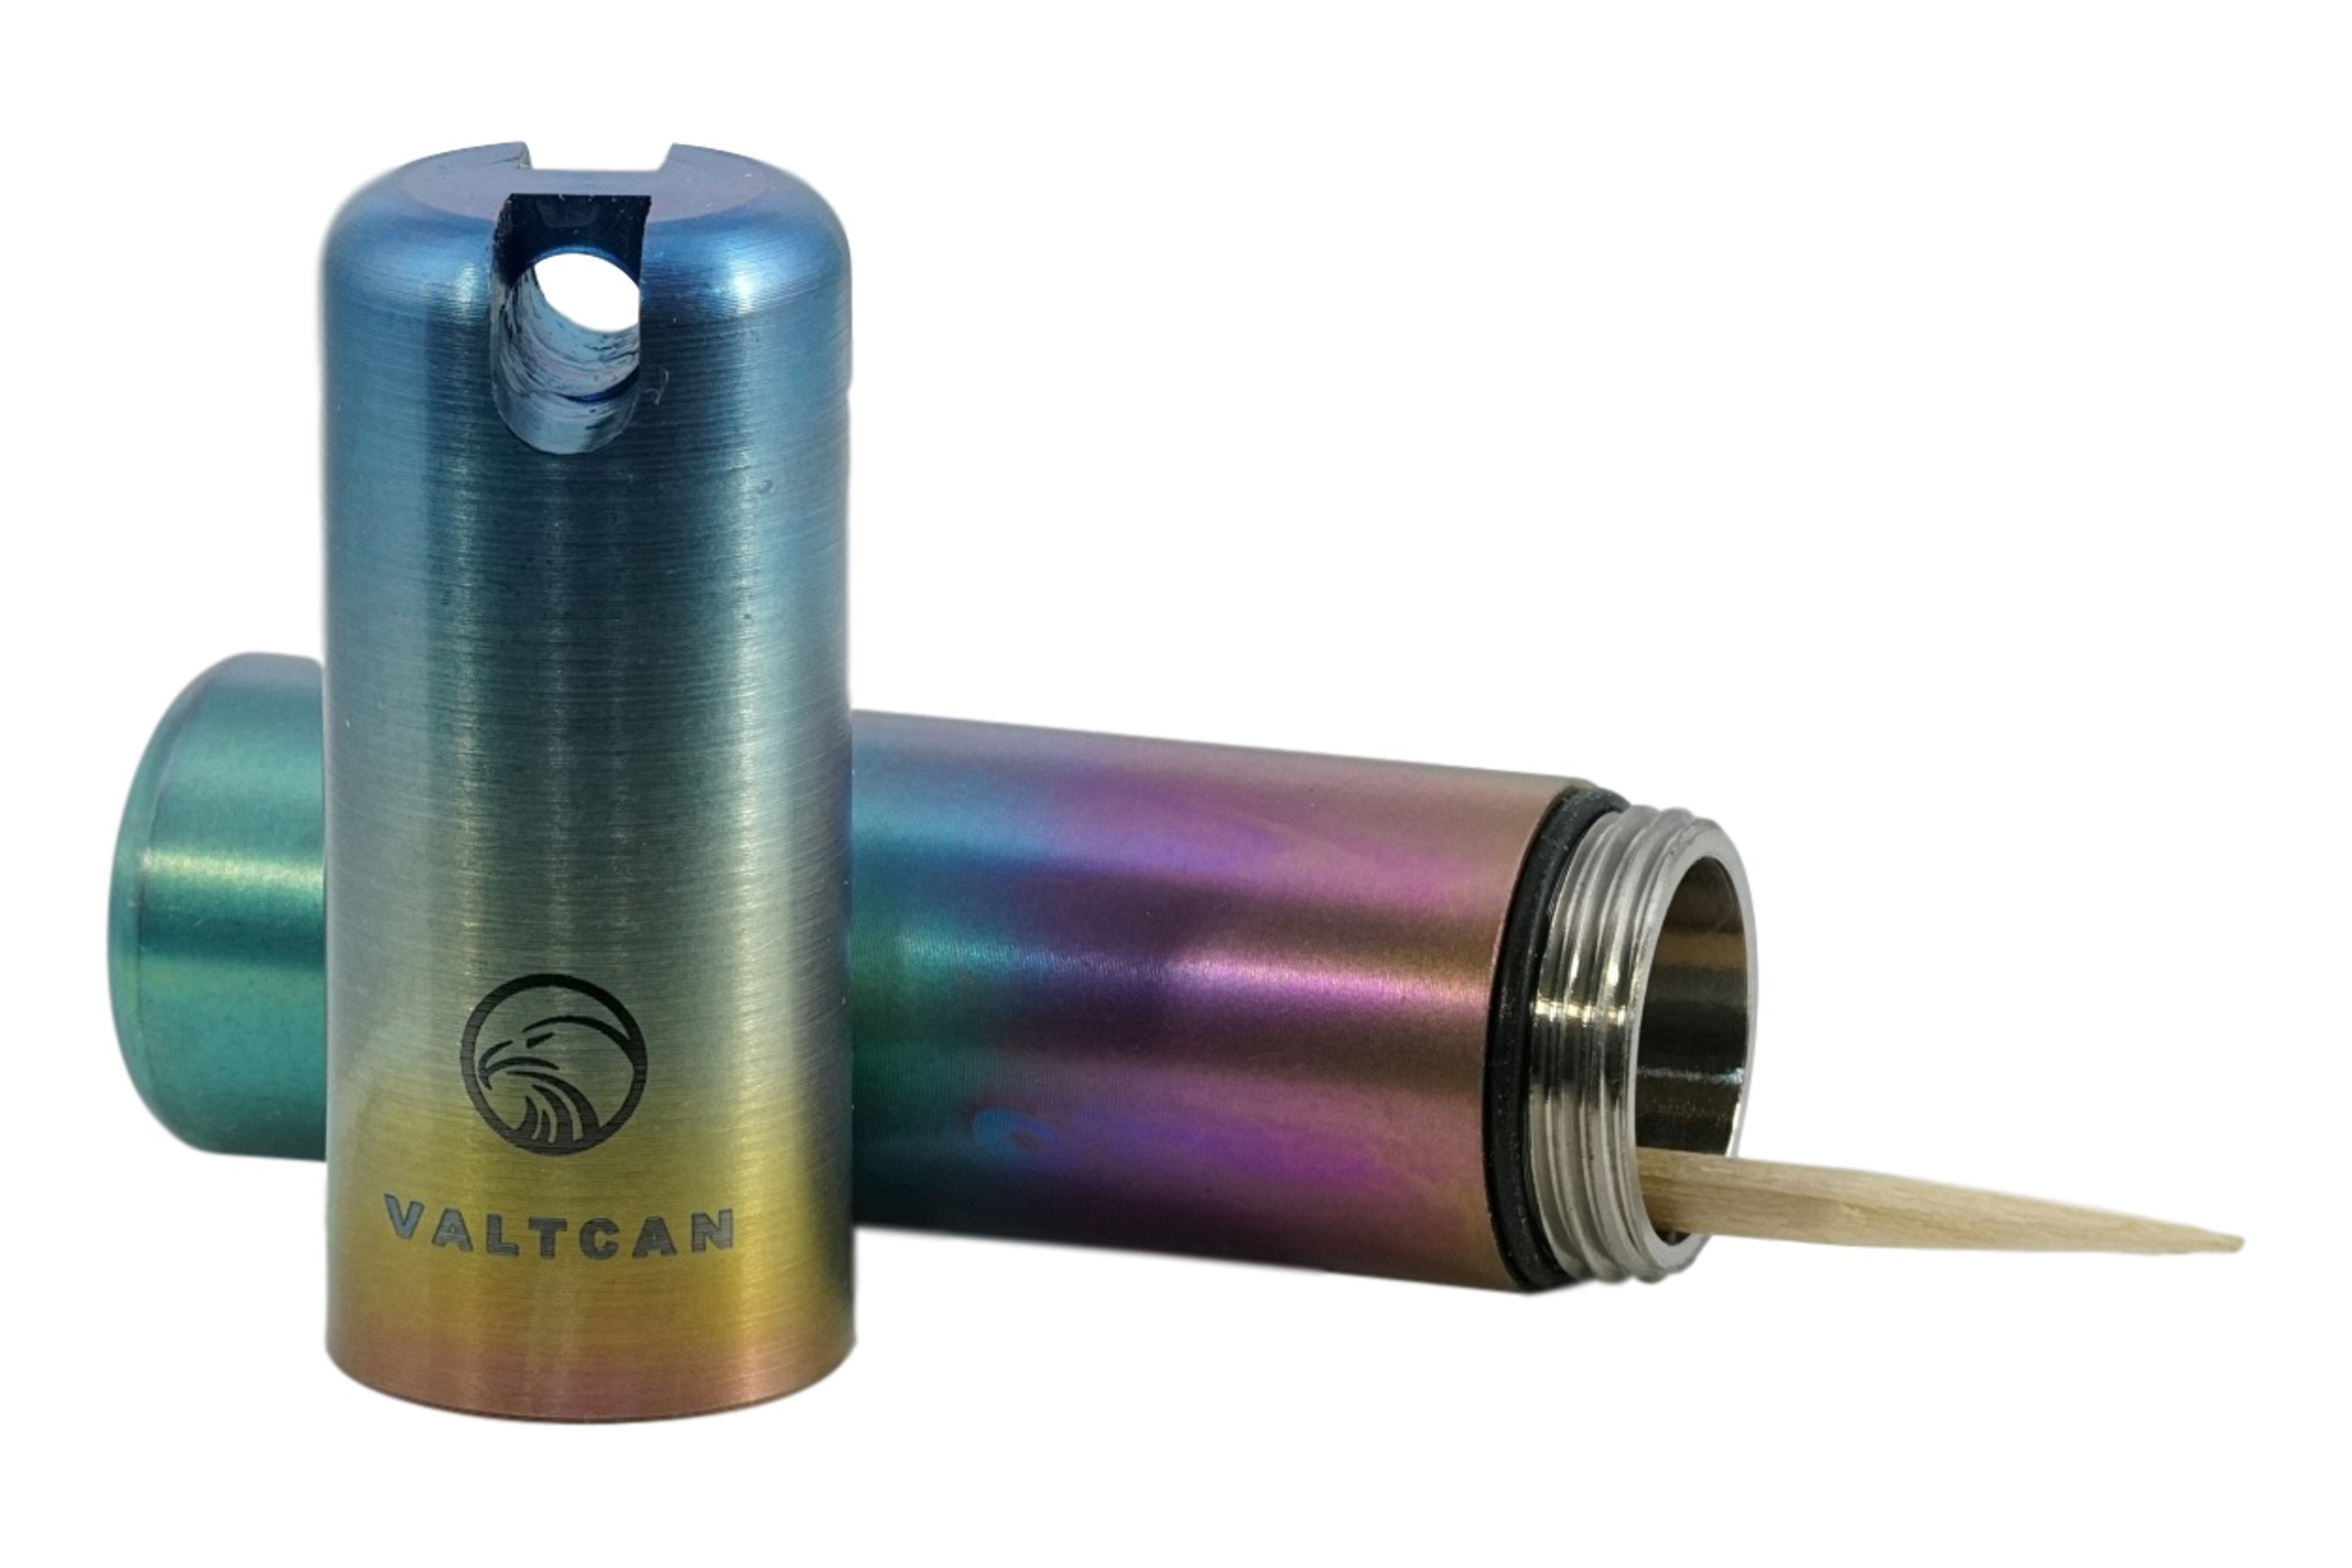 Valtcan TOOTHPICK HOLDER Titanium Pill Canister Keychain Rainbow by Valtcan